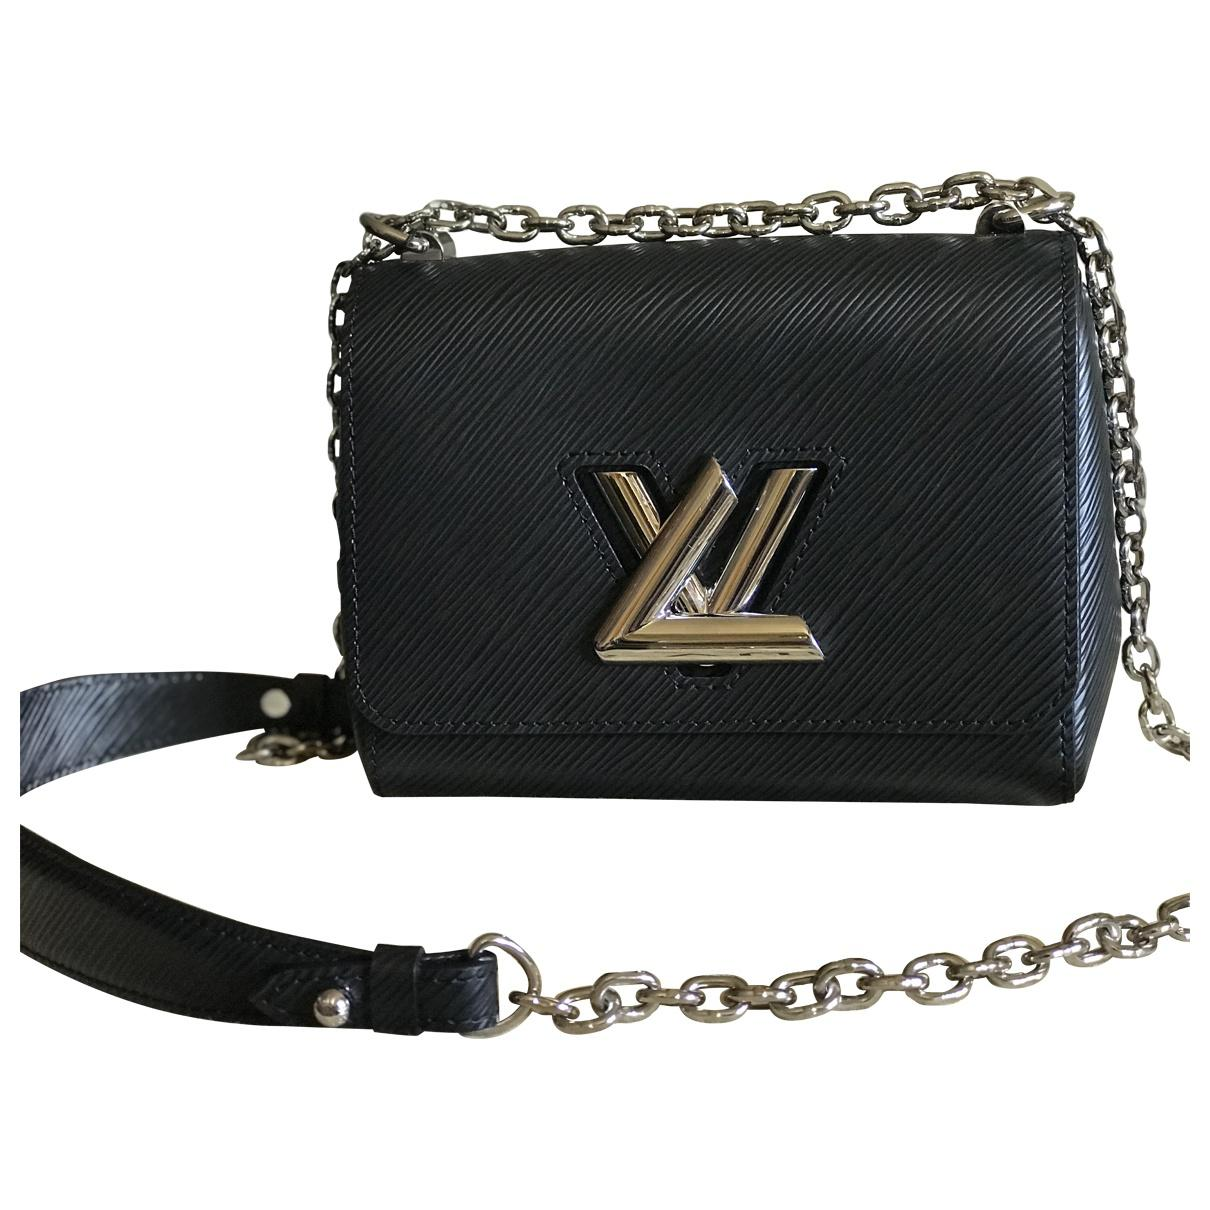 Louis Vuitton Pre-owned - Twist leather clutch bag